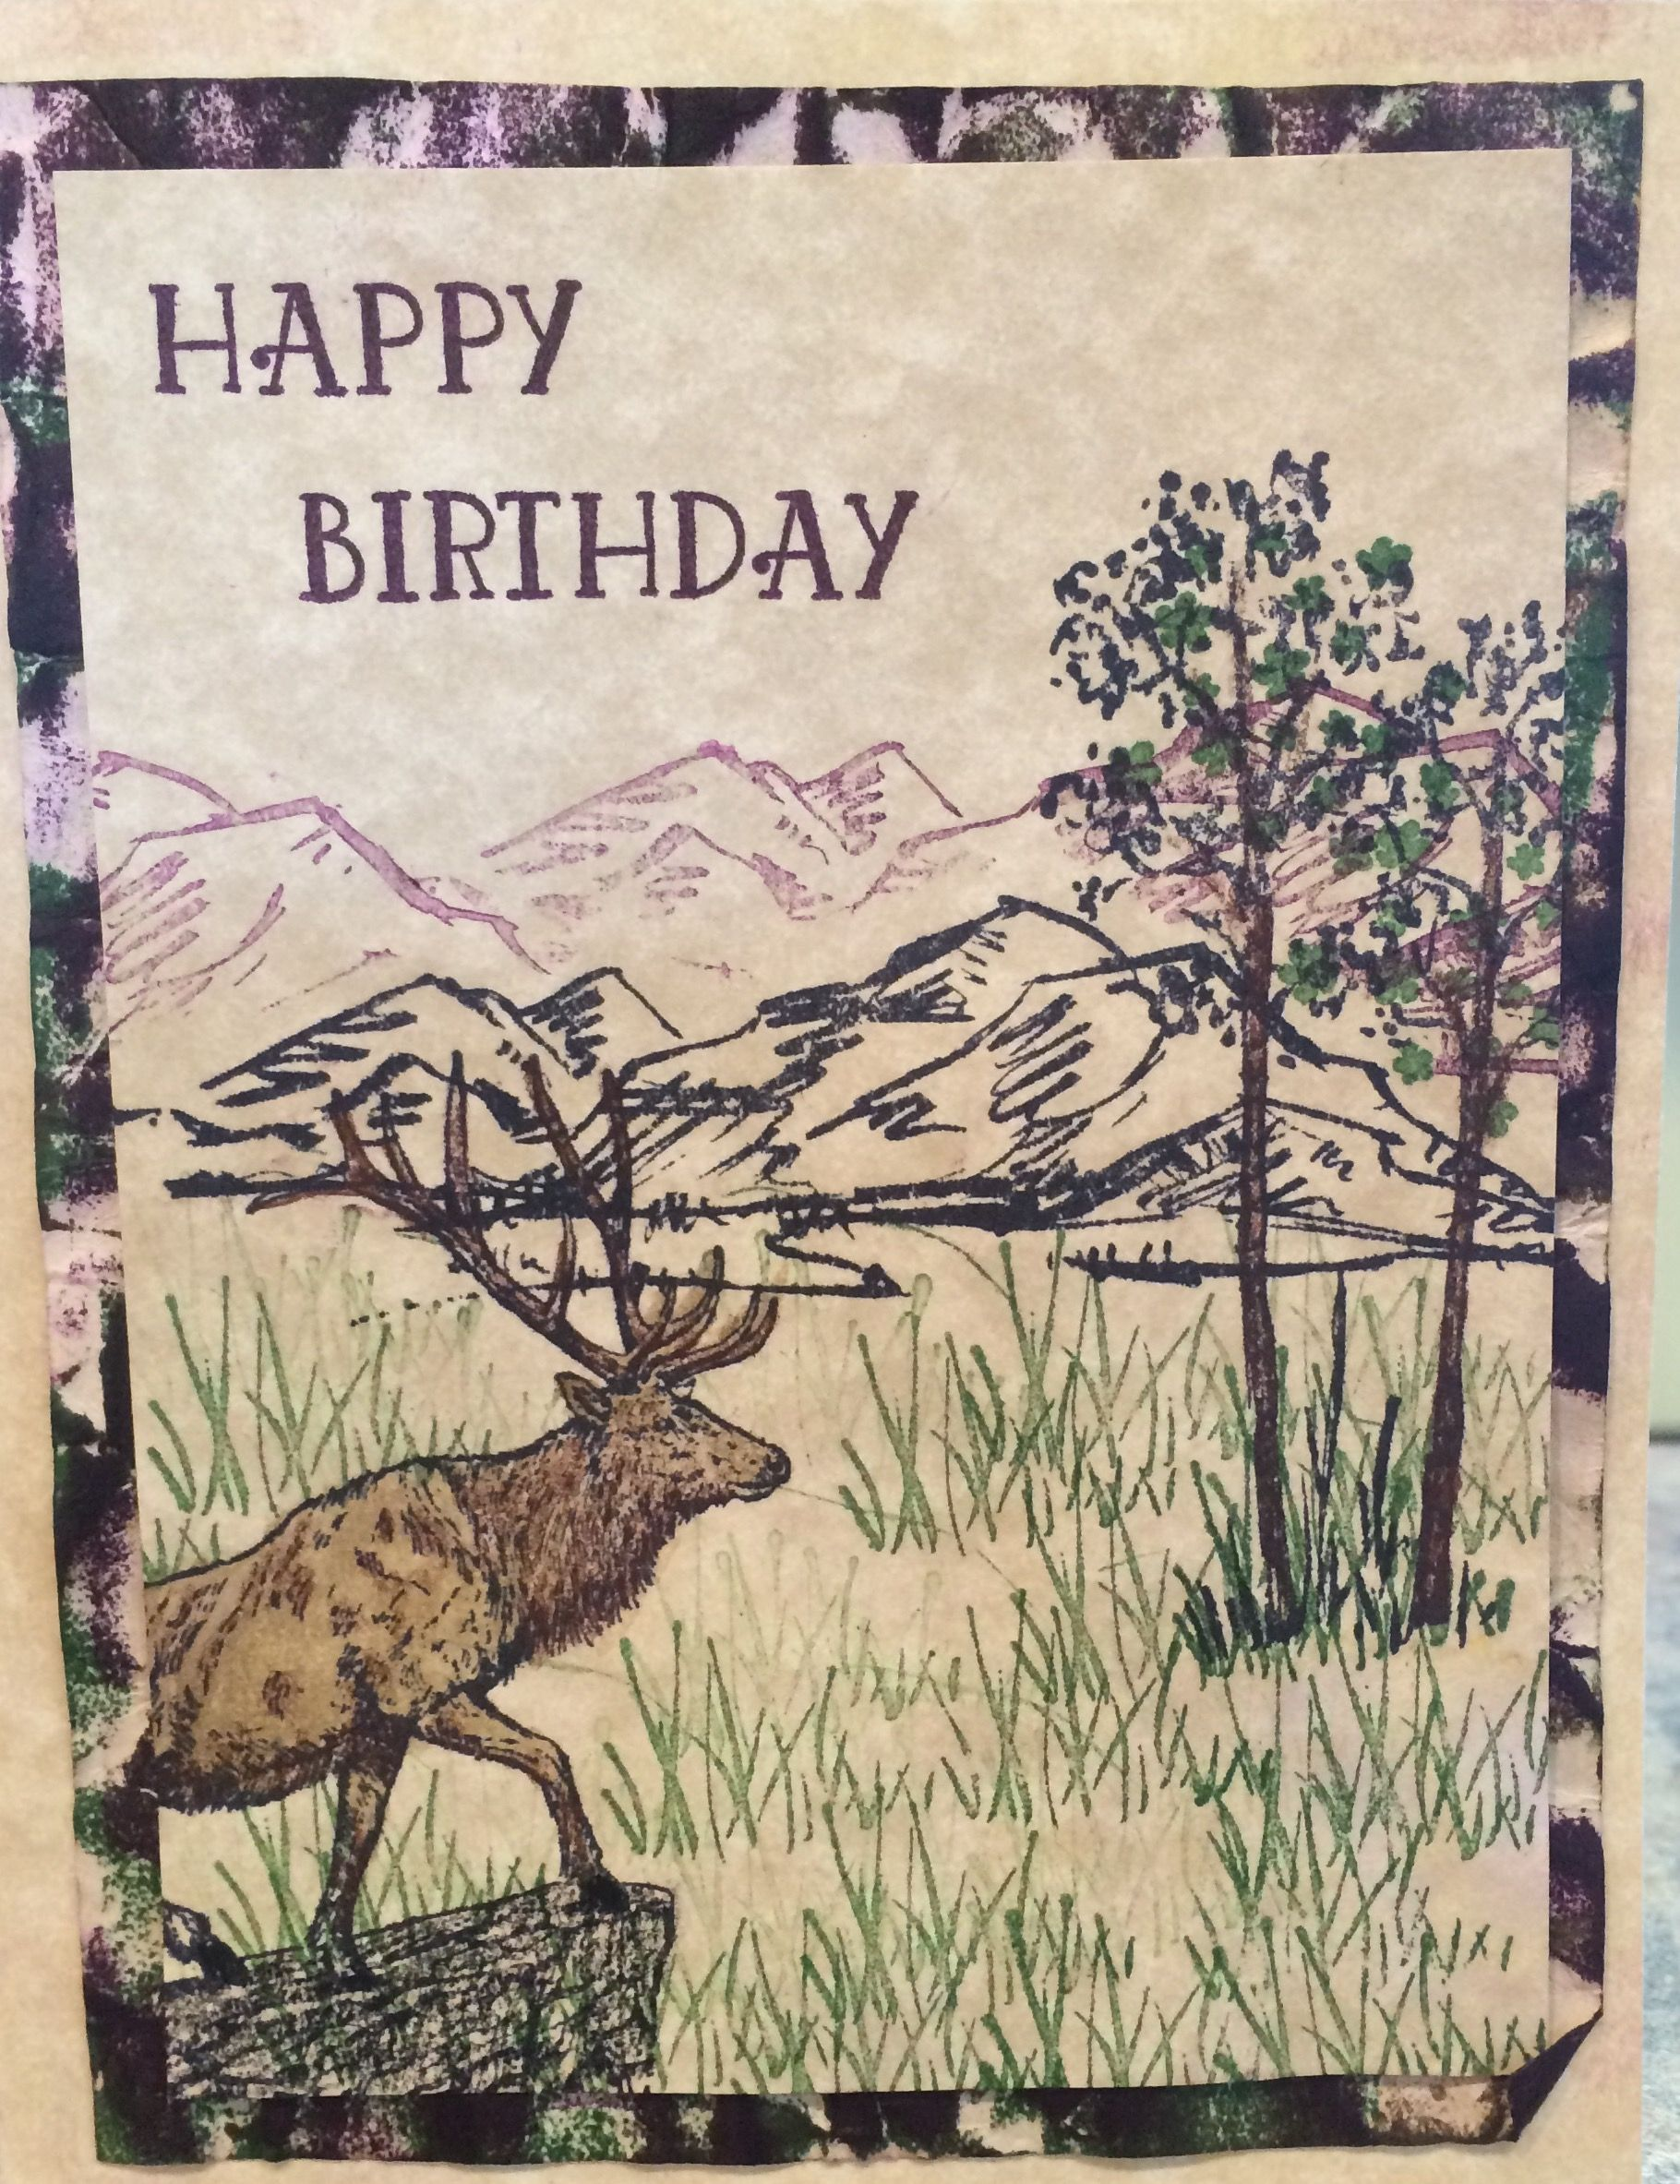 Birthday card i made for my husband using camouflage technique birthday card i made for my husband using camouflage technique stampn up stamps bookmarktalkfo Image collections